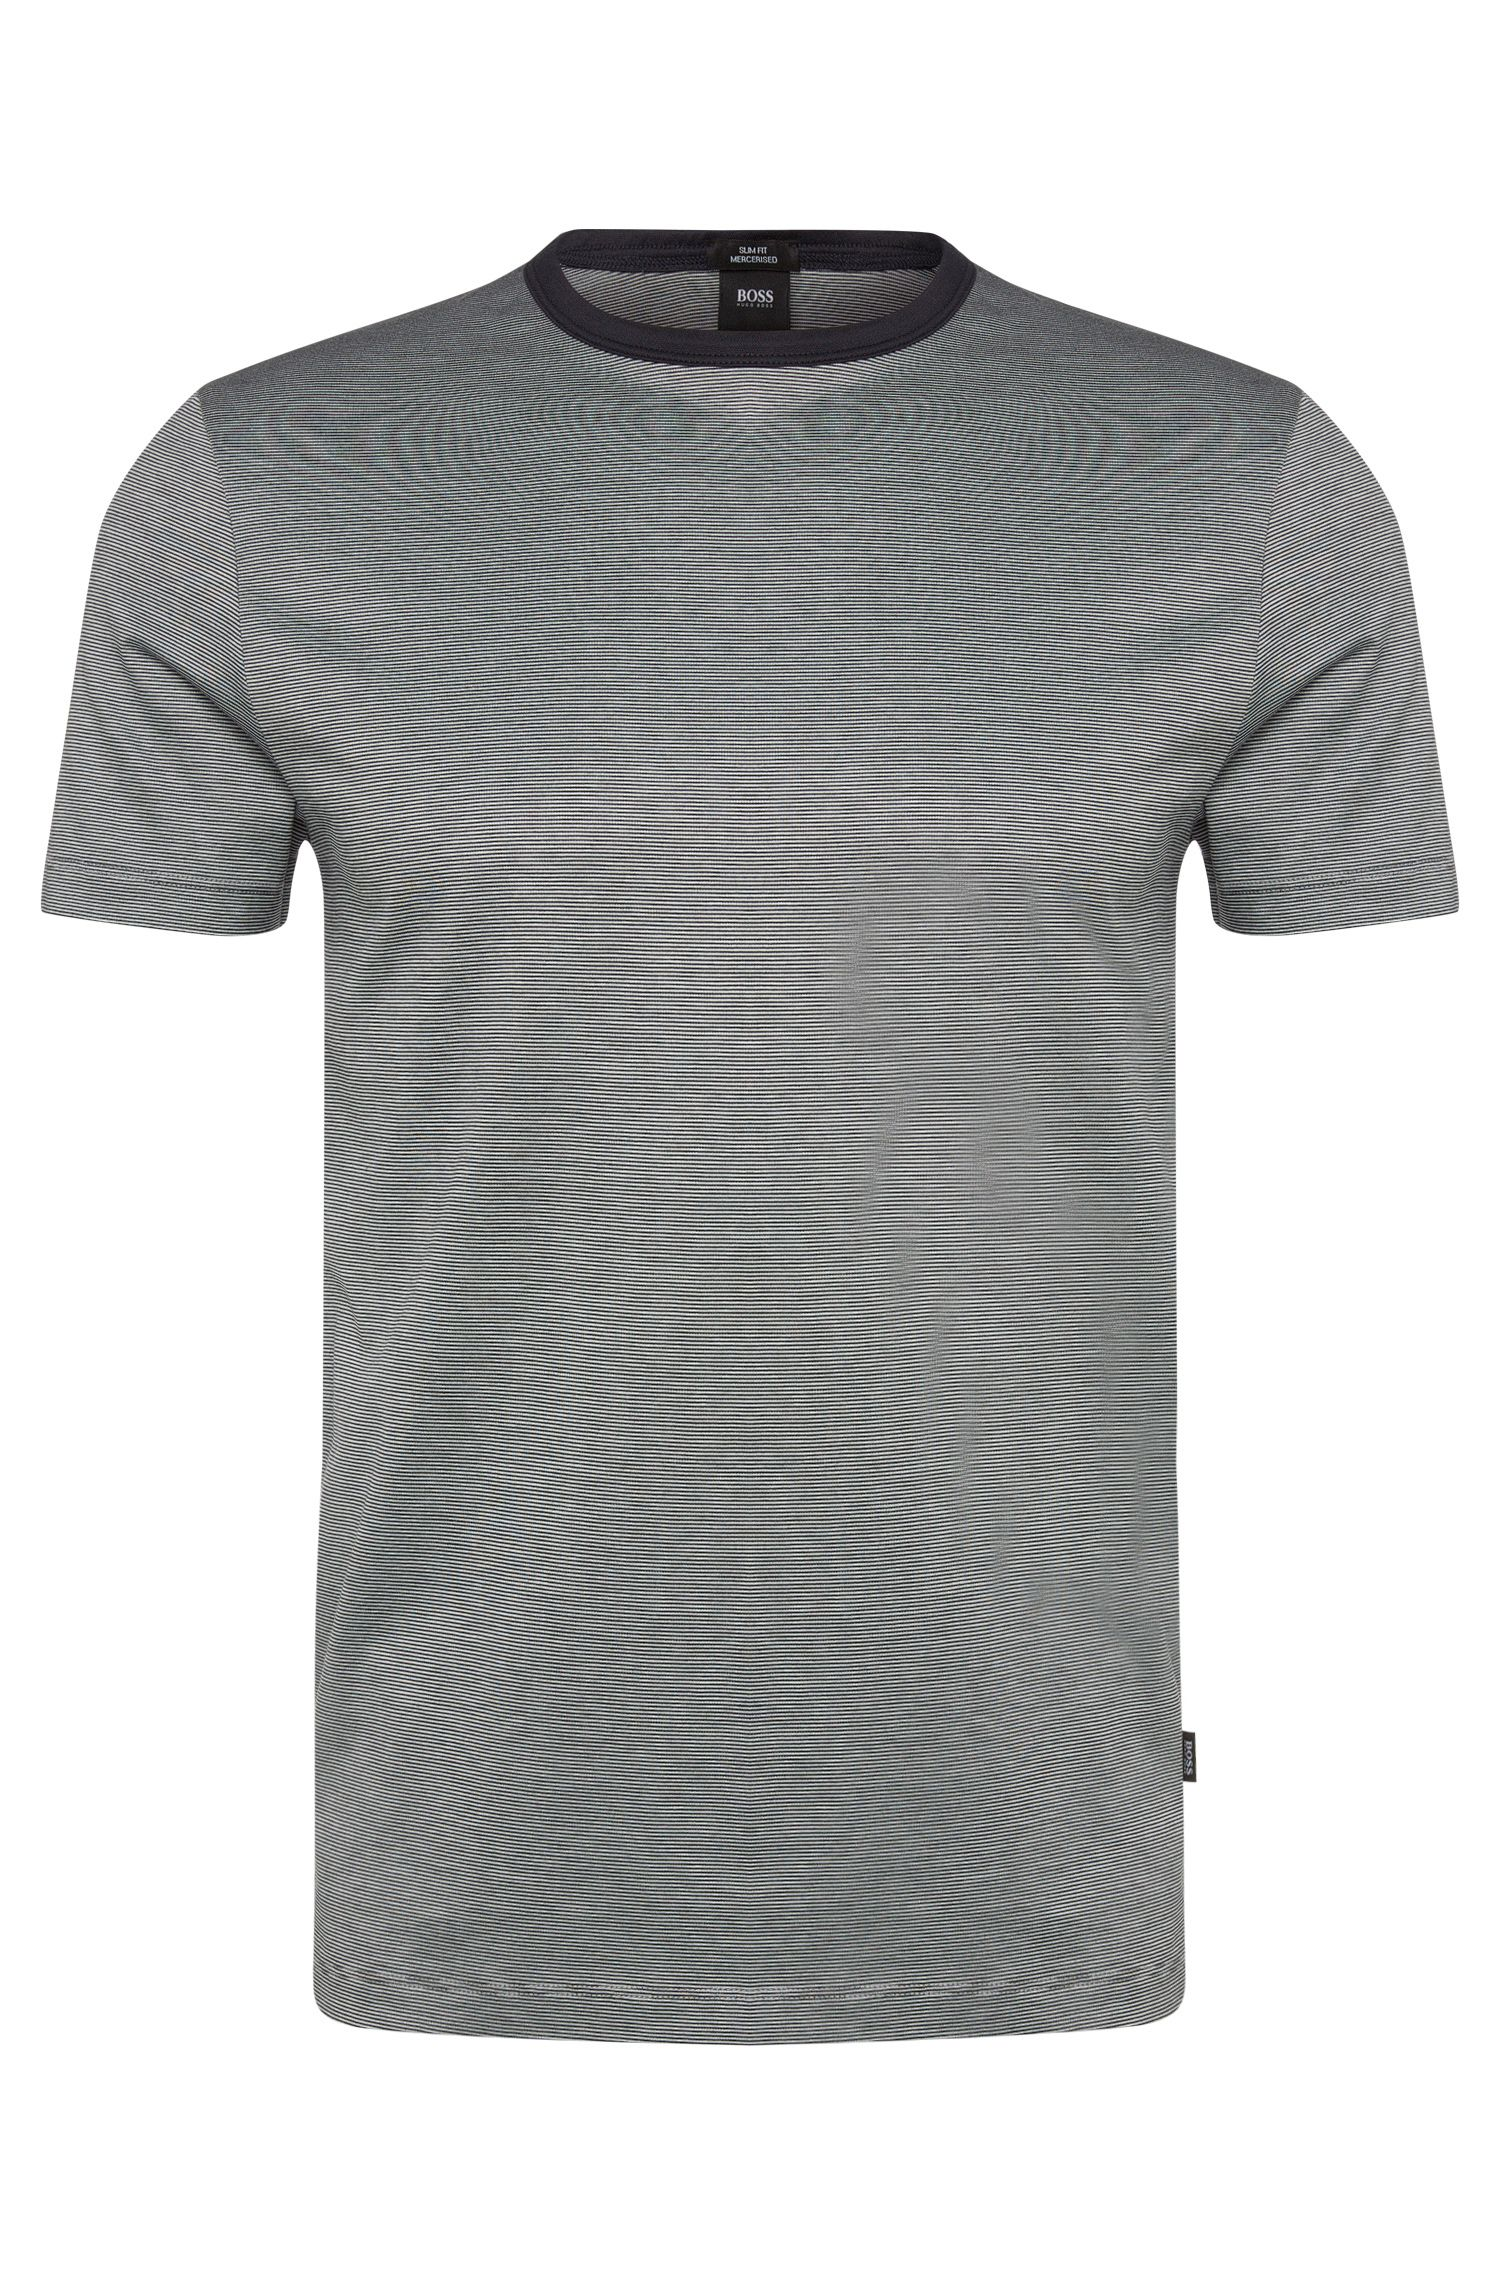 'Tessler' | Cotton Finestripe T-Shirt